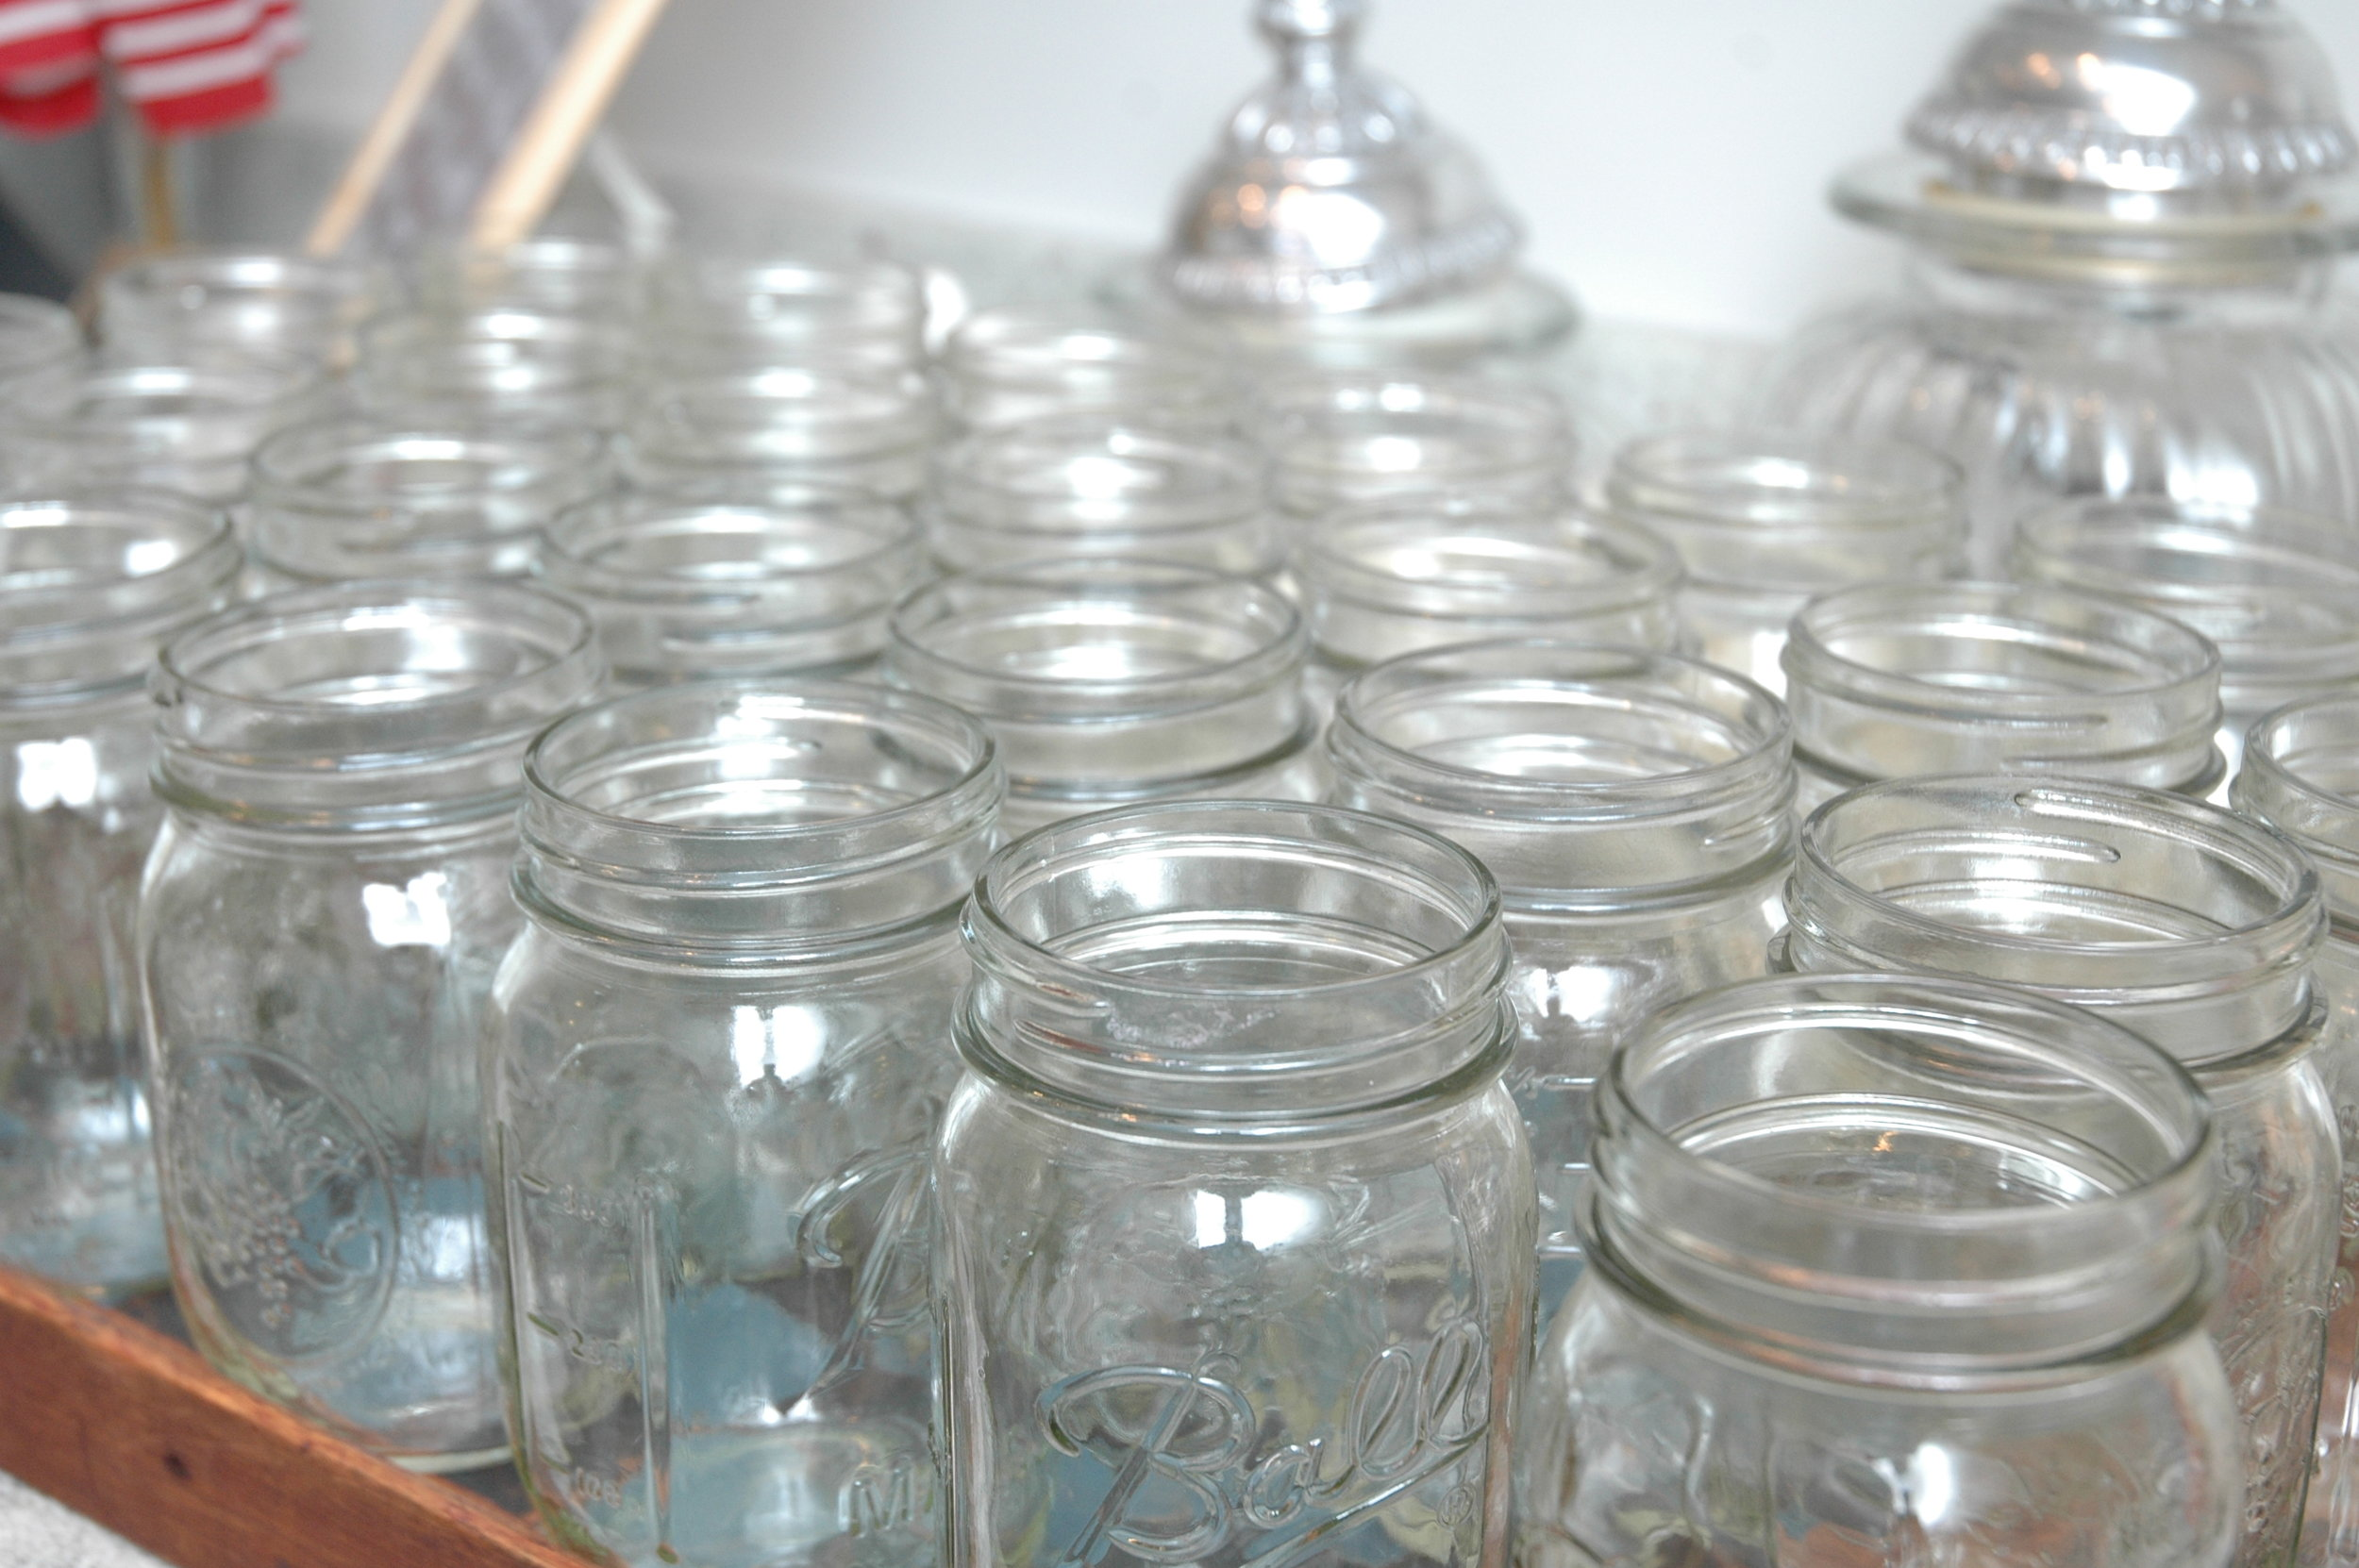 Nothing more American country than drinking of of Ball-Mason jars in the summer. They're on an antique checkerboard tray.